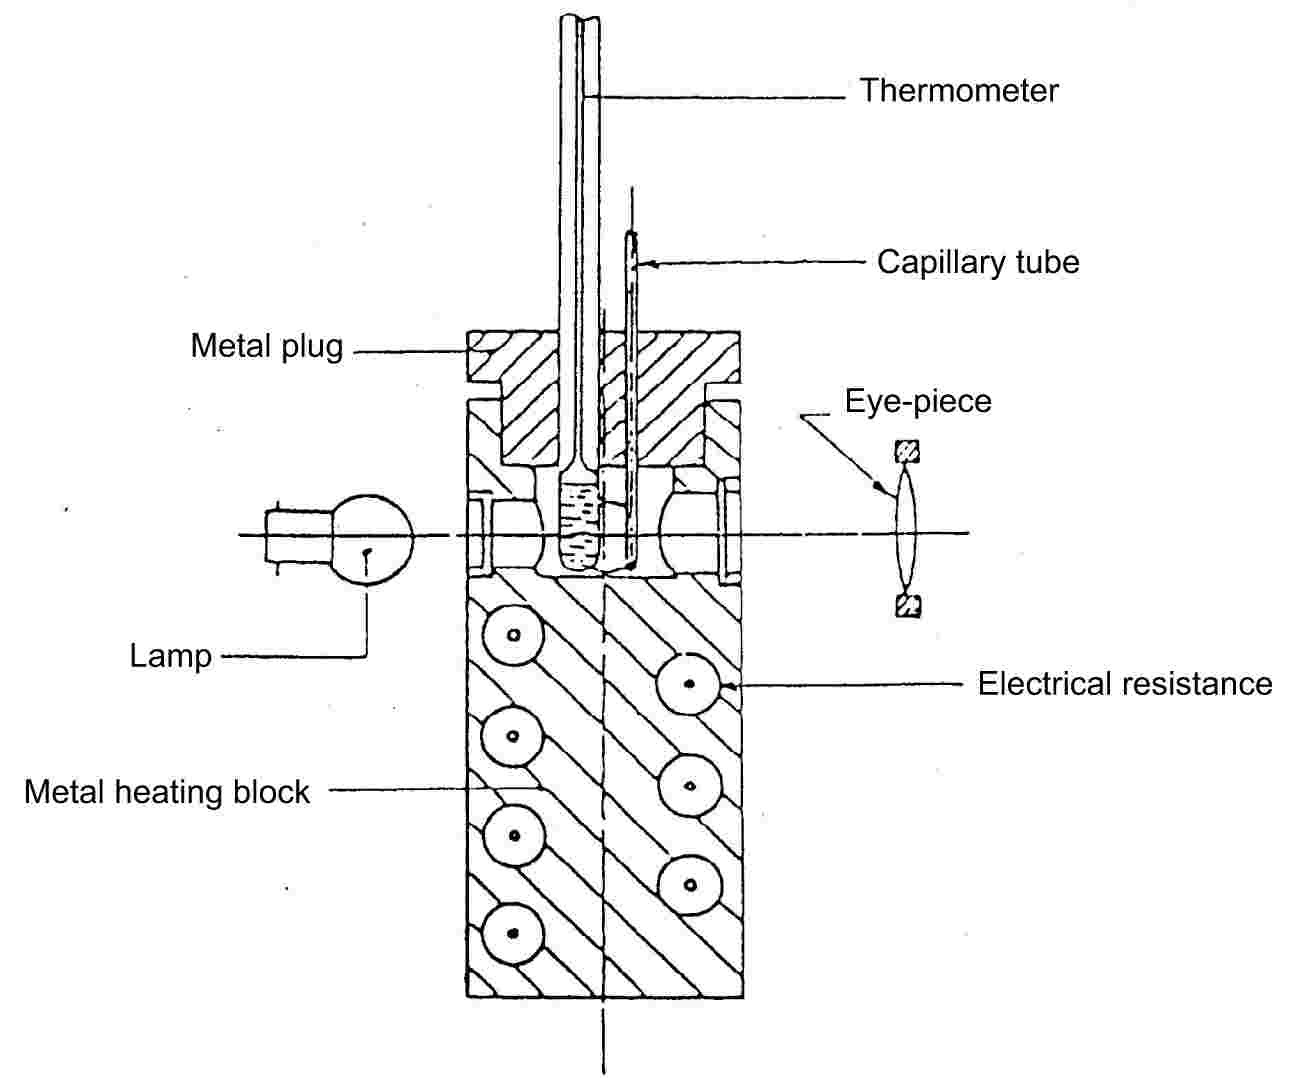 ThermometerCapillary tubeMetal plugEye-pieceLampElectrical resistanceMetal heating block